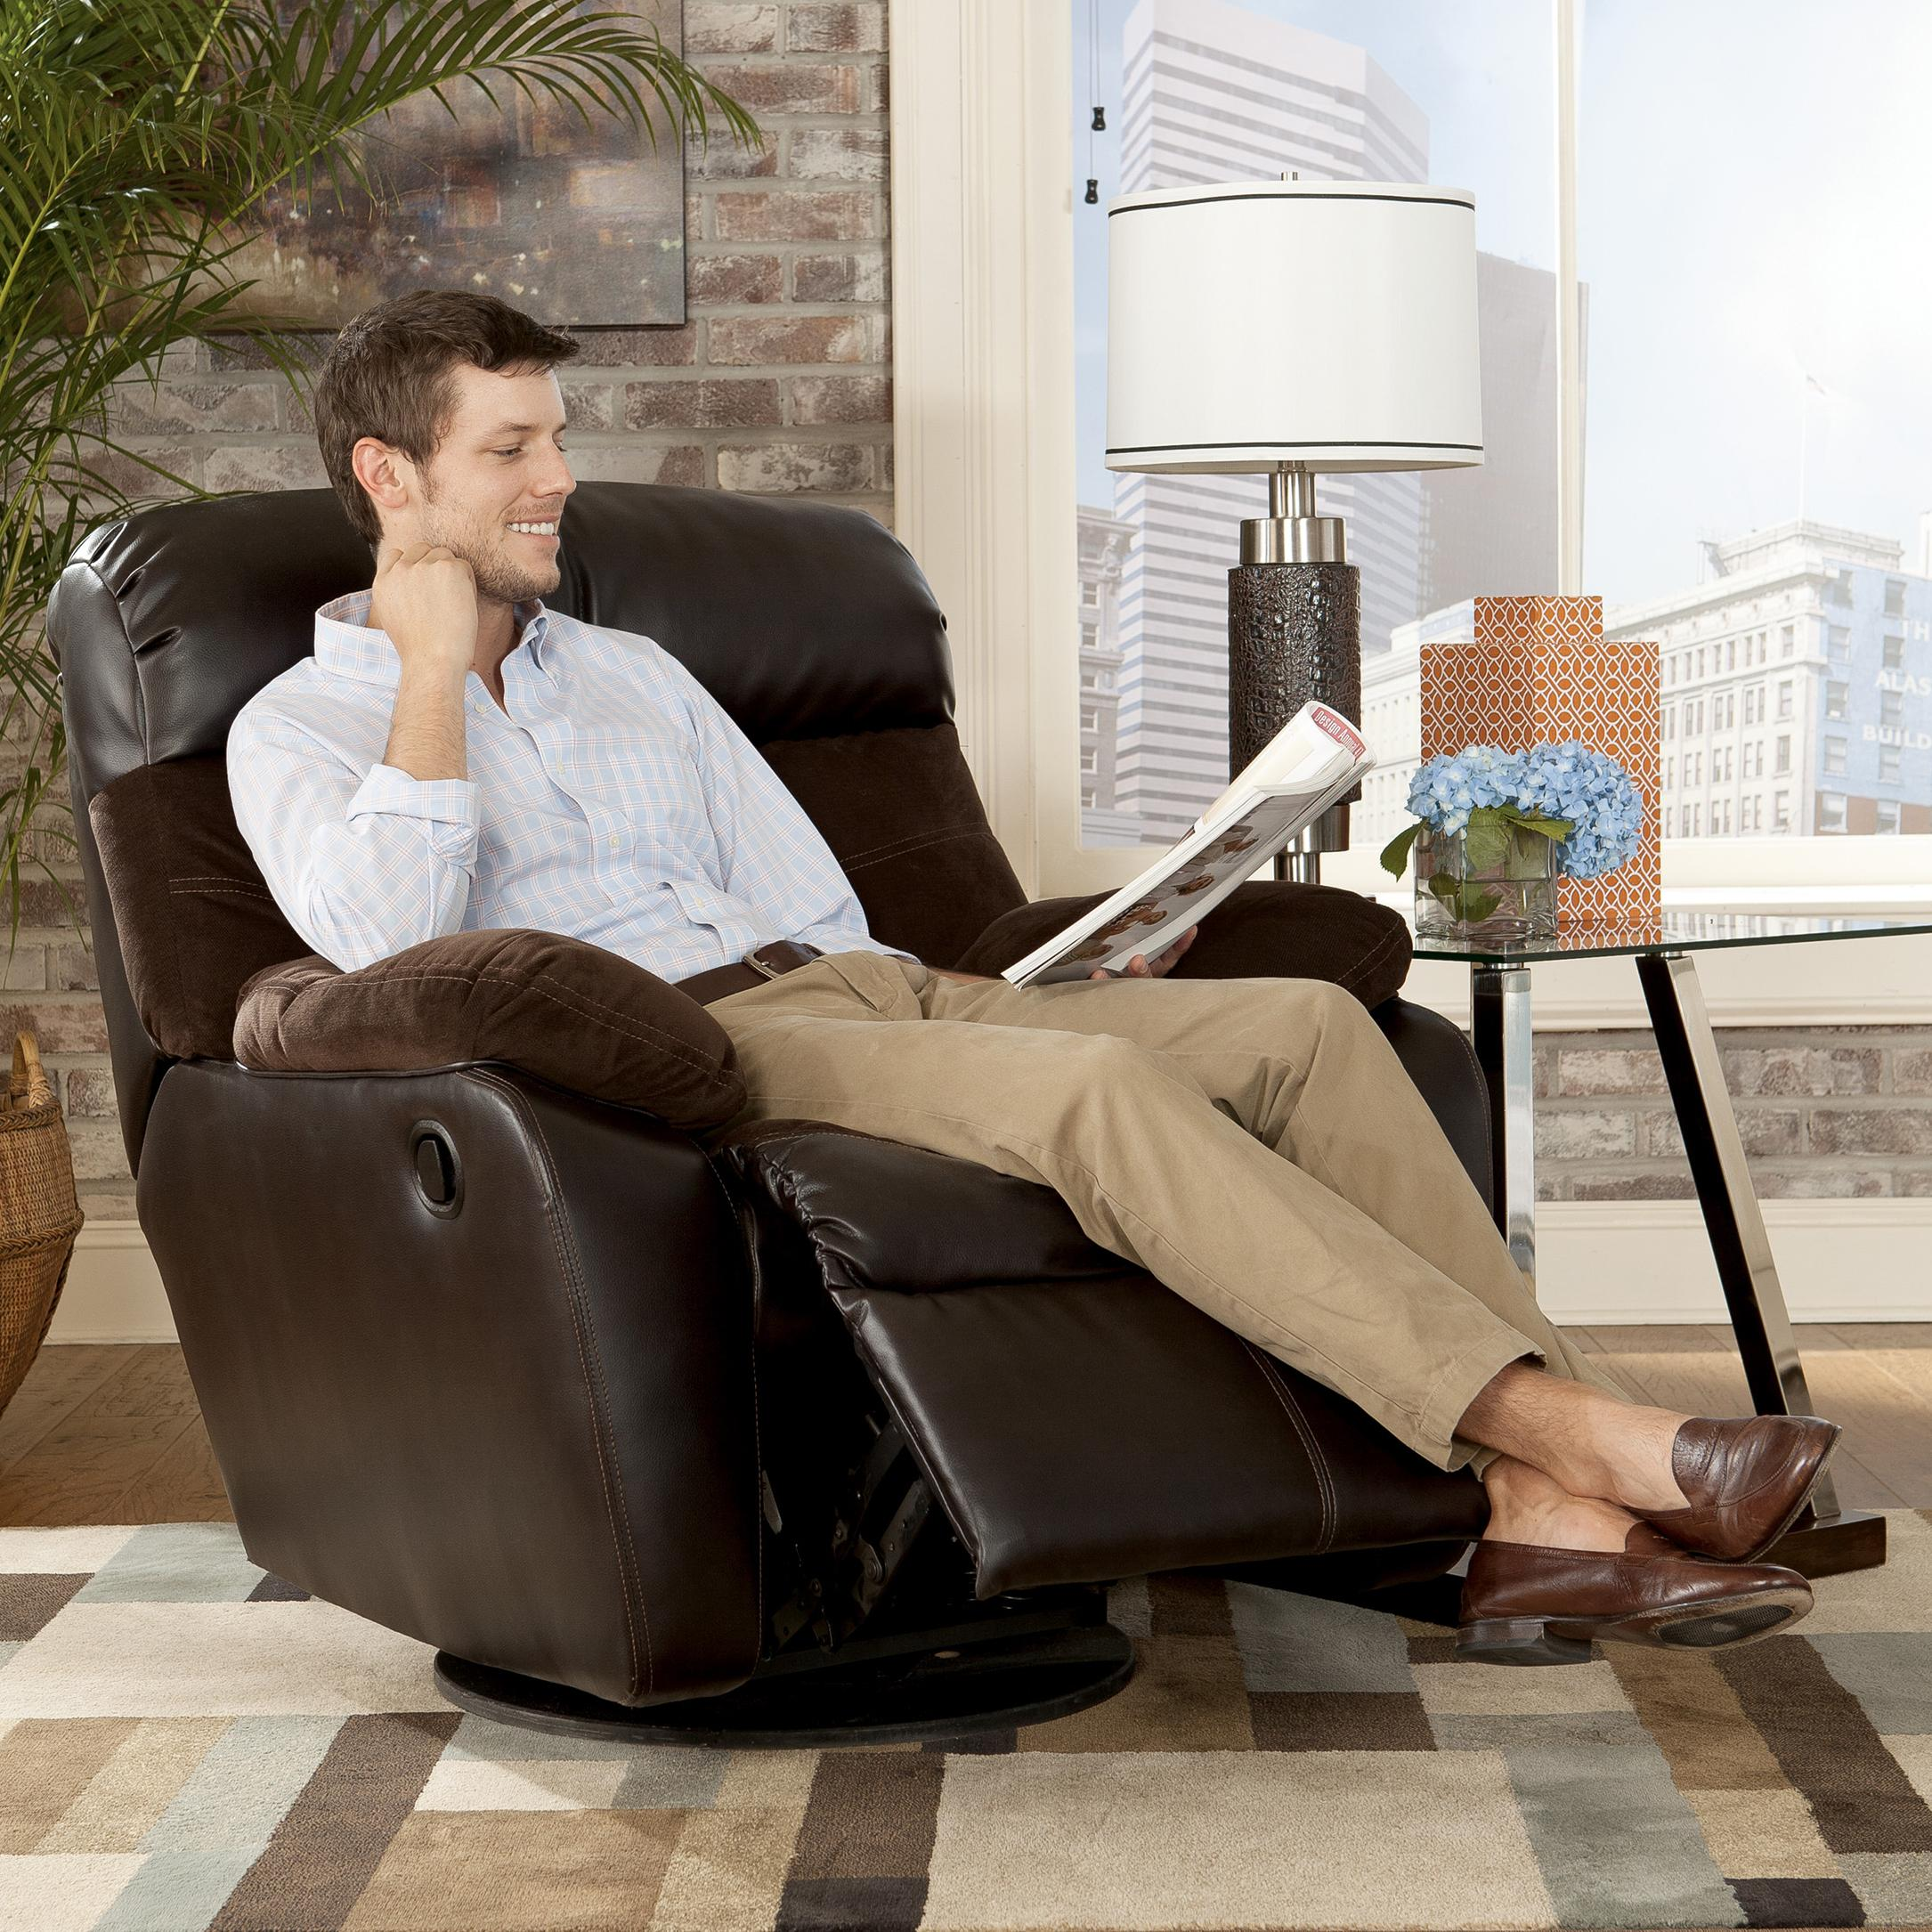 Swivel Rocker Recliner by Signature Design by Ashley : Wolf and Gardiner Wolf Furniture